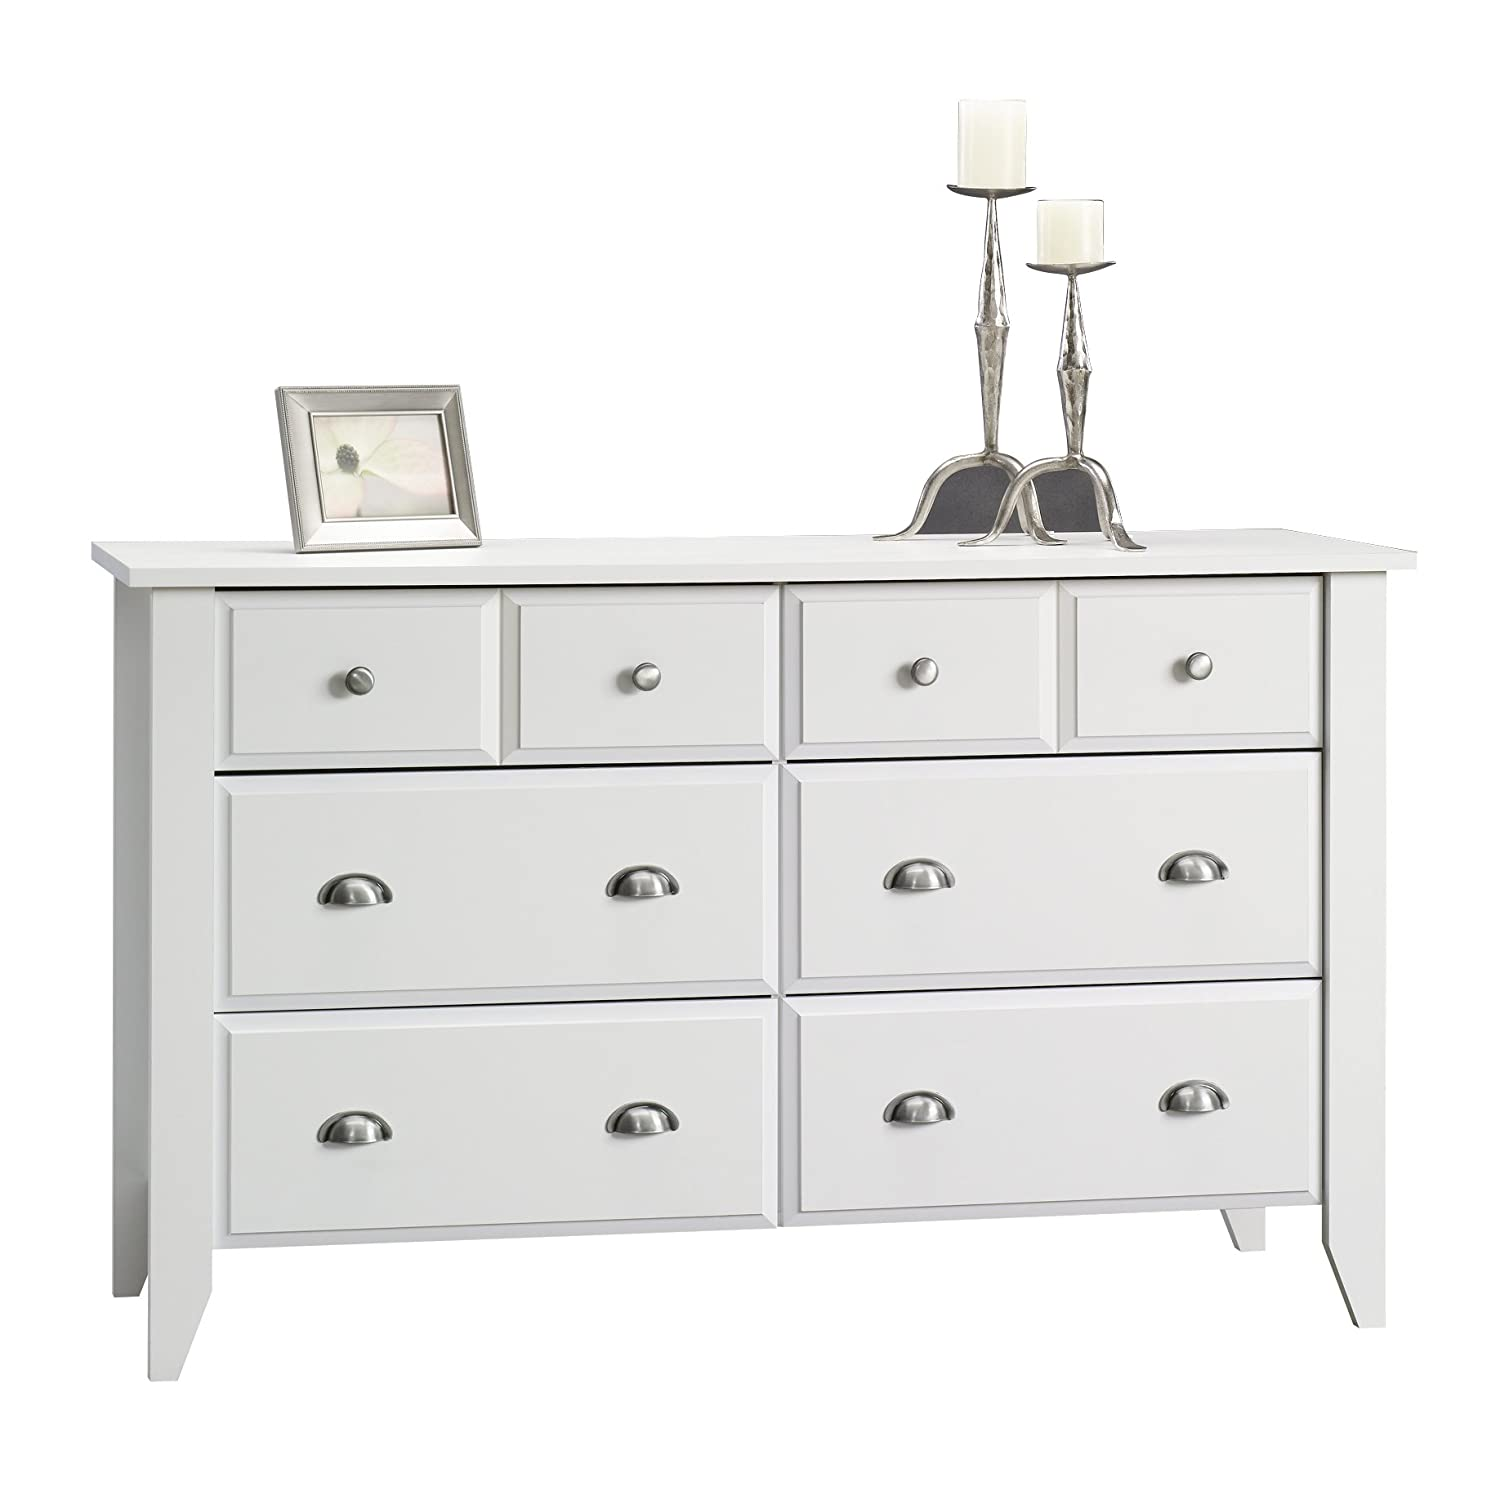 Large bedroom dresser storage drawer modern 6 wood chest of drawers white brown martlocal for White bedroom chest of drawers